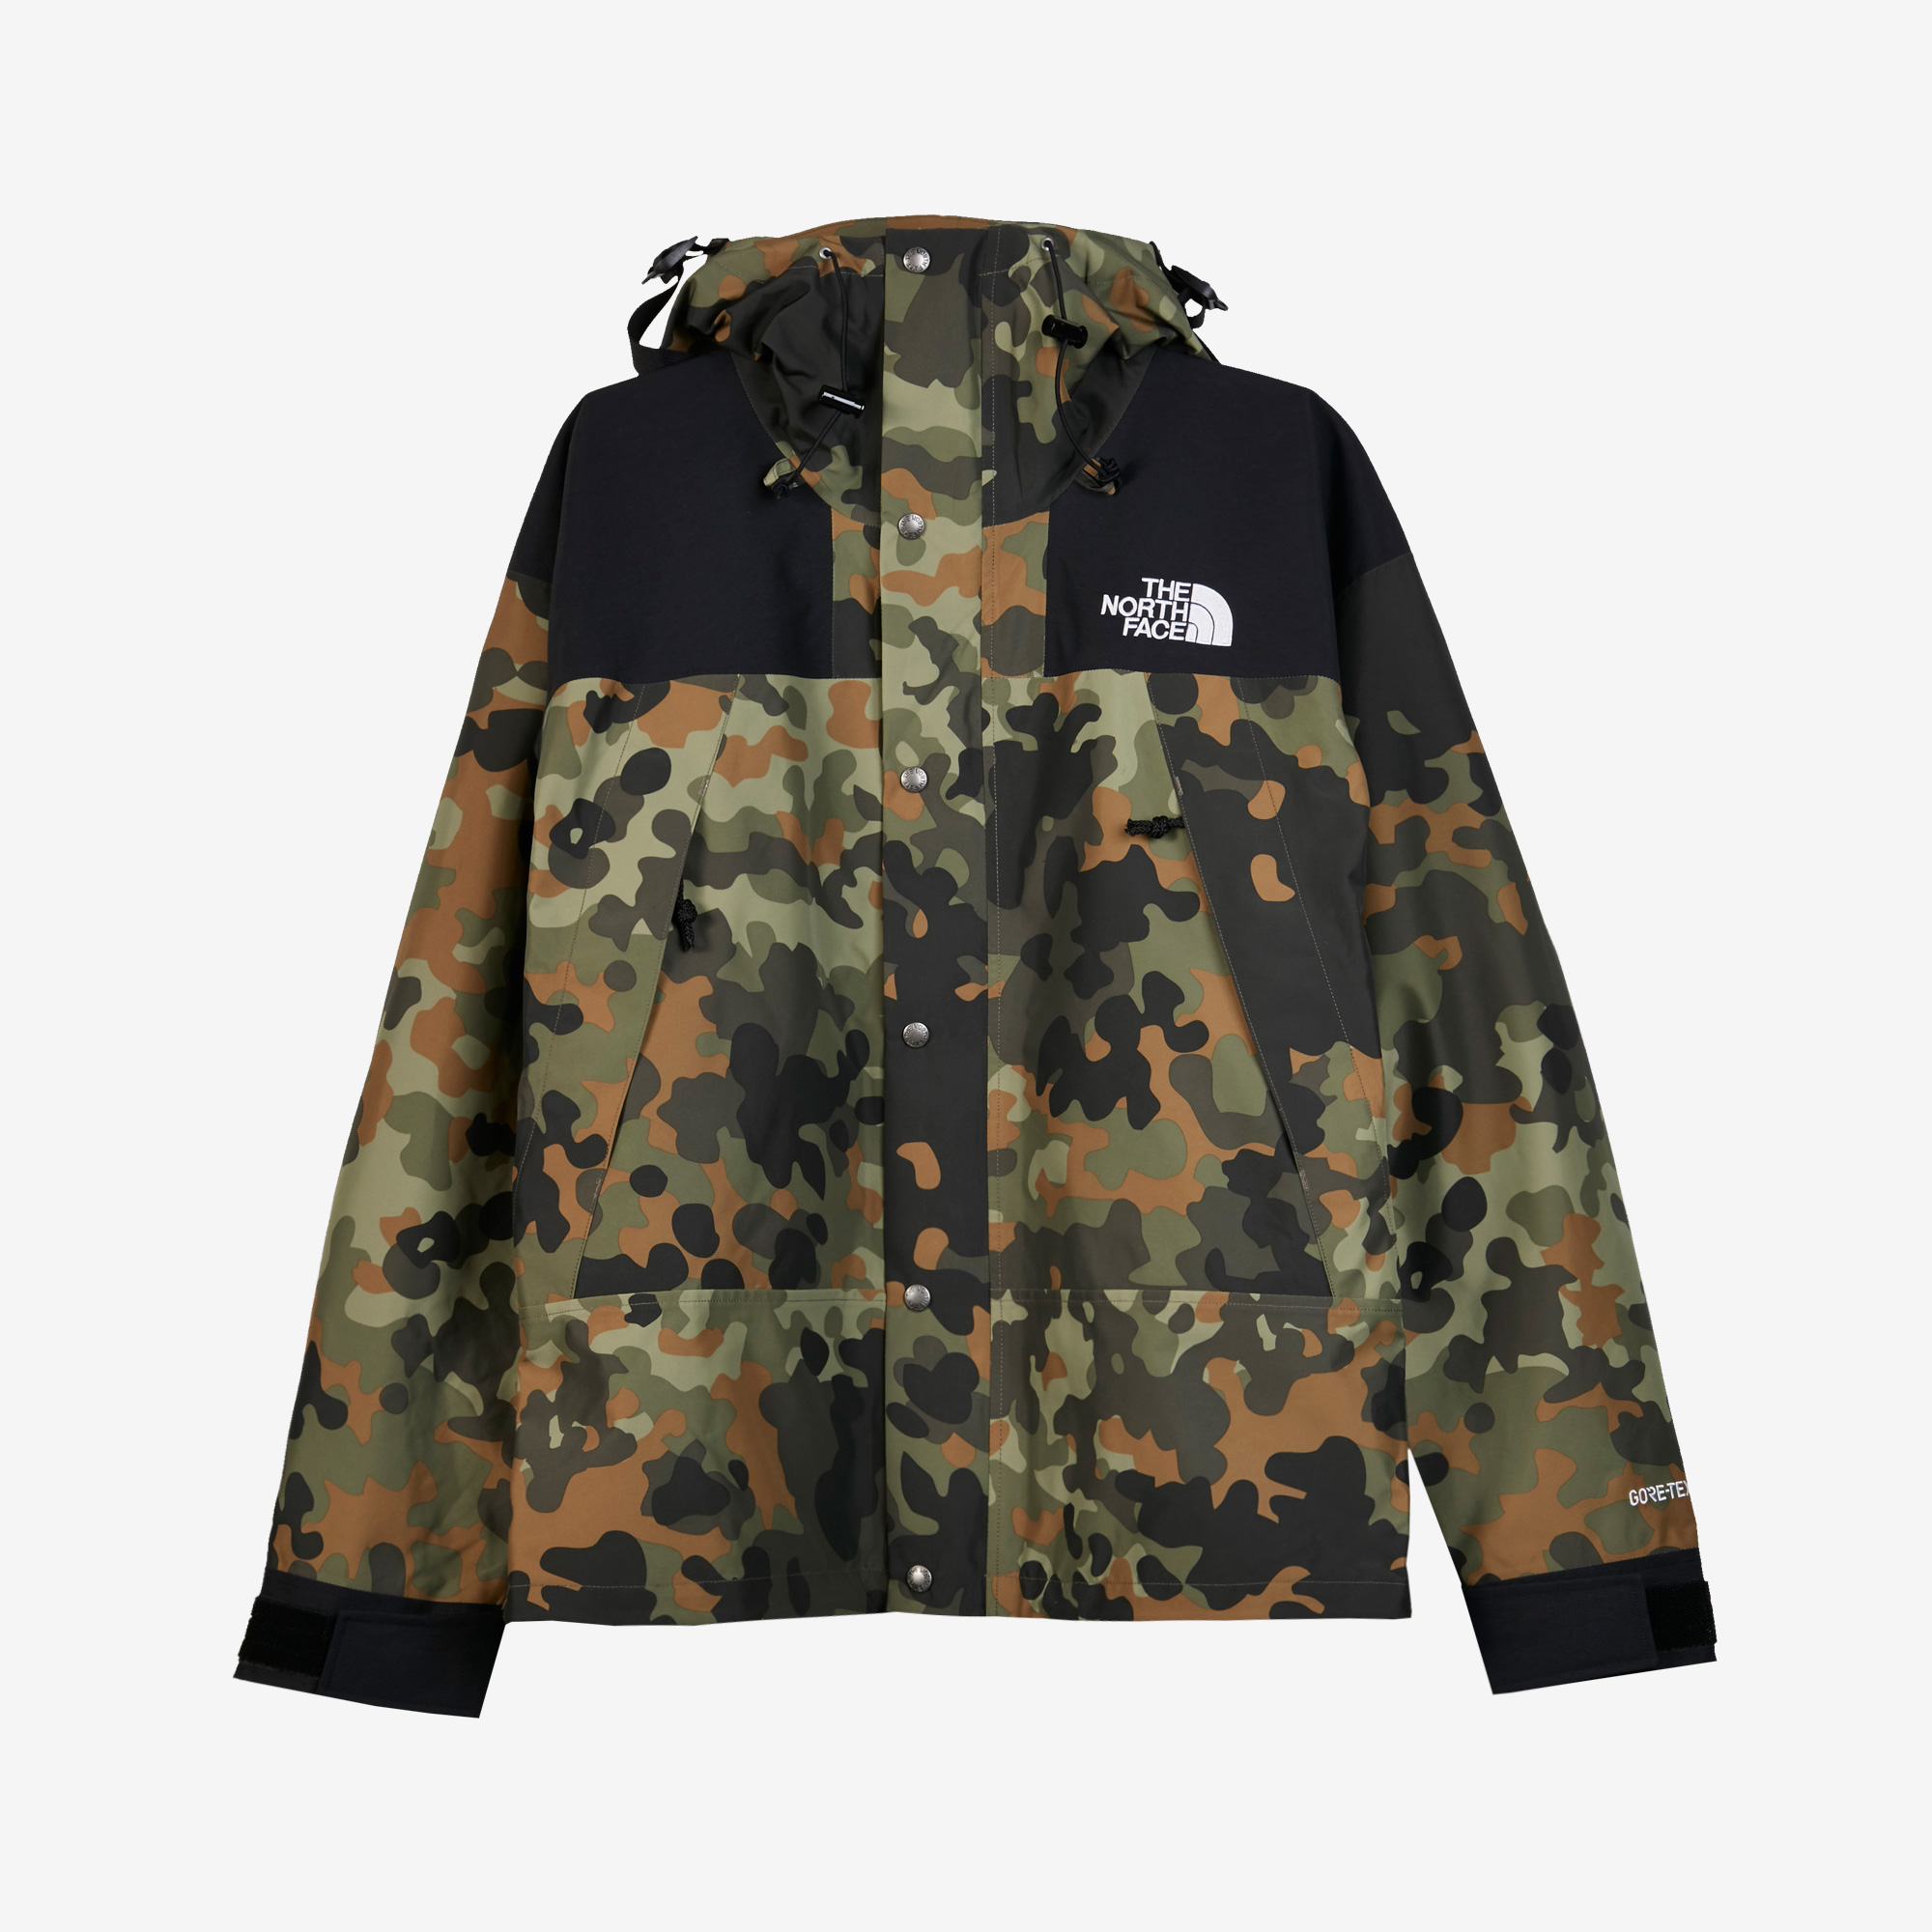 newest 012ac affe0 The North Face 1990 Mountain Jacket GORE-TEX ...